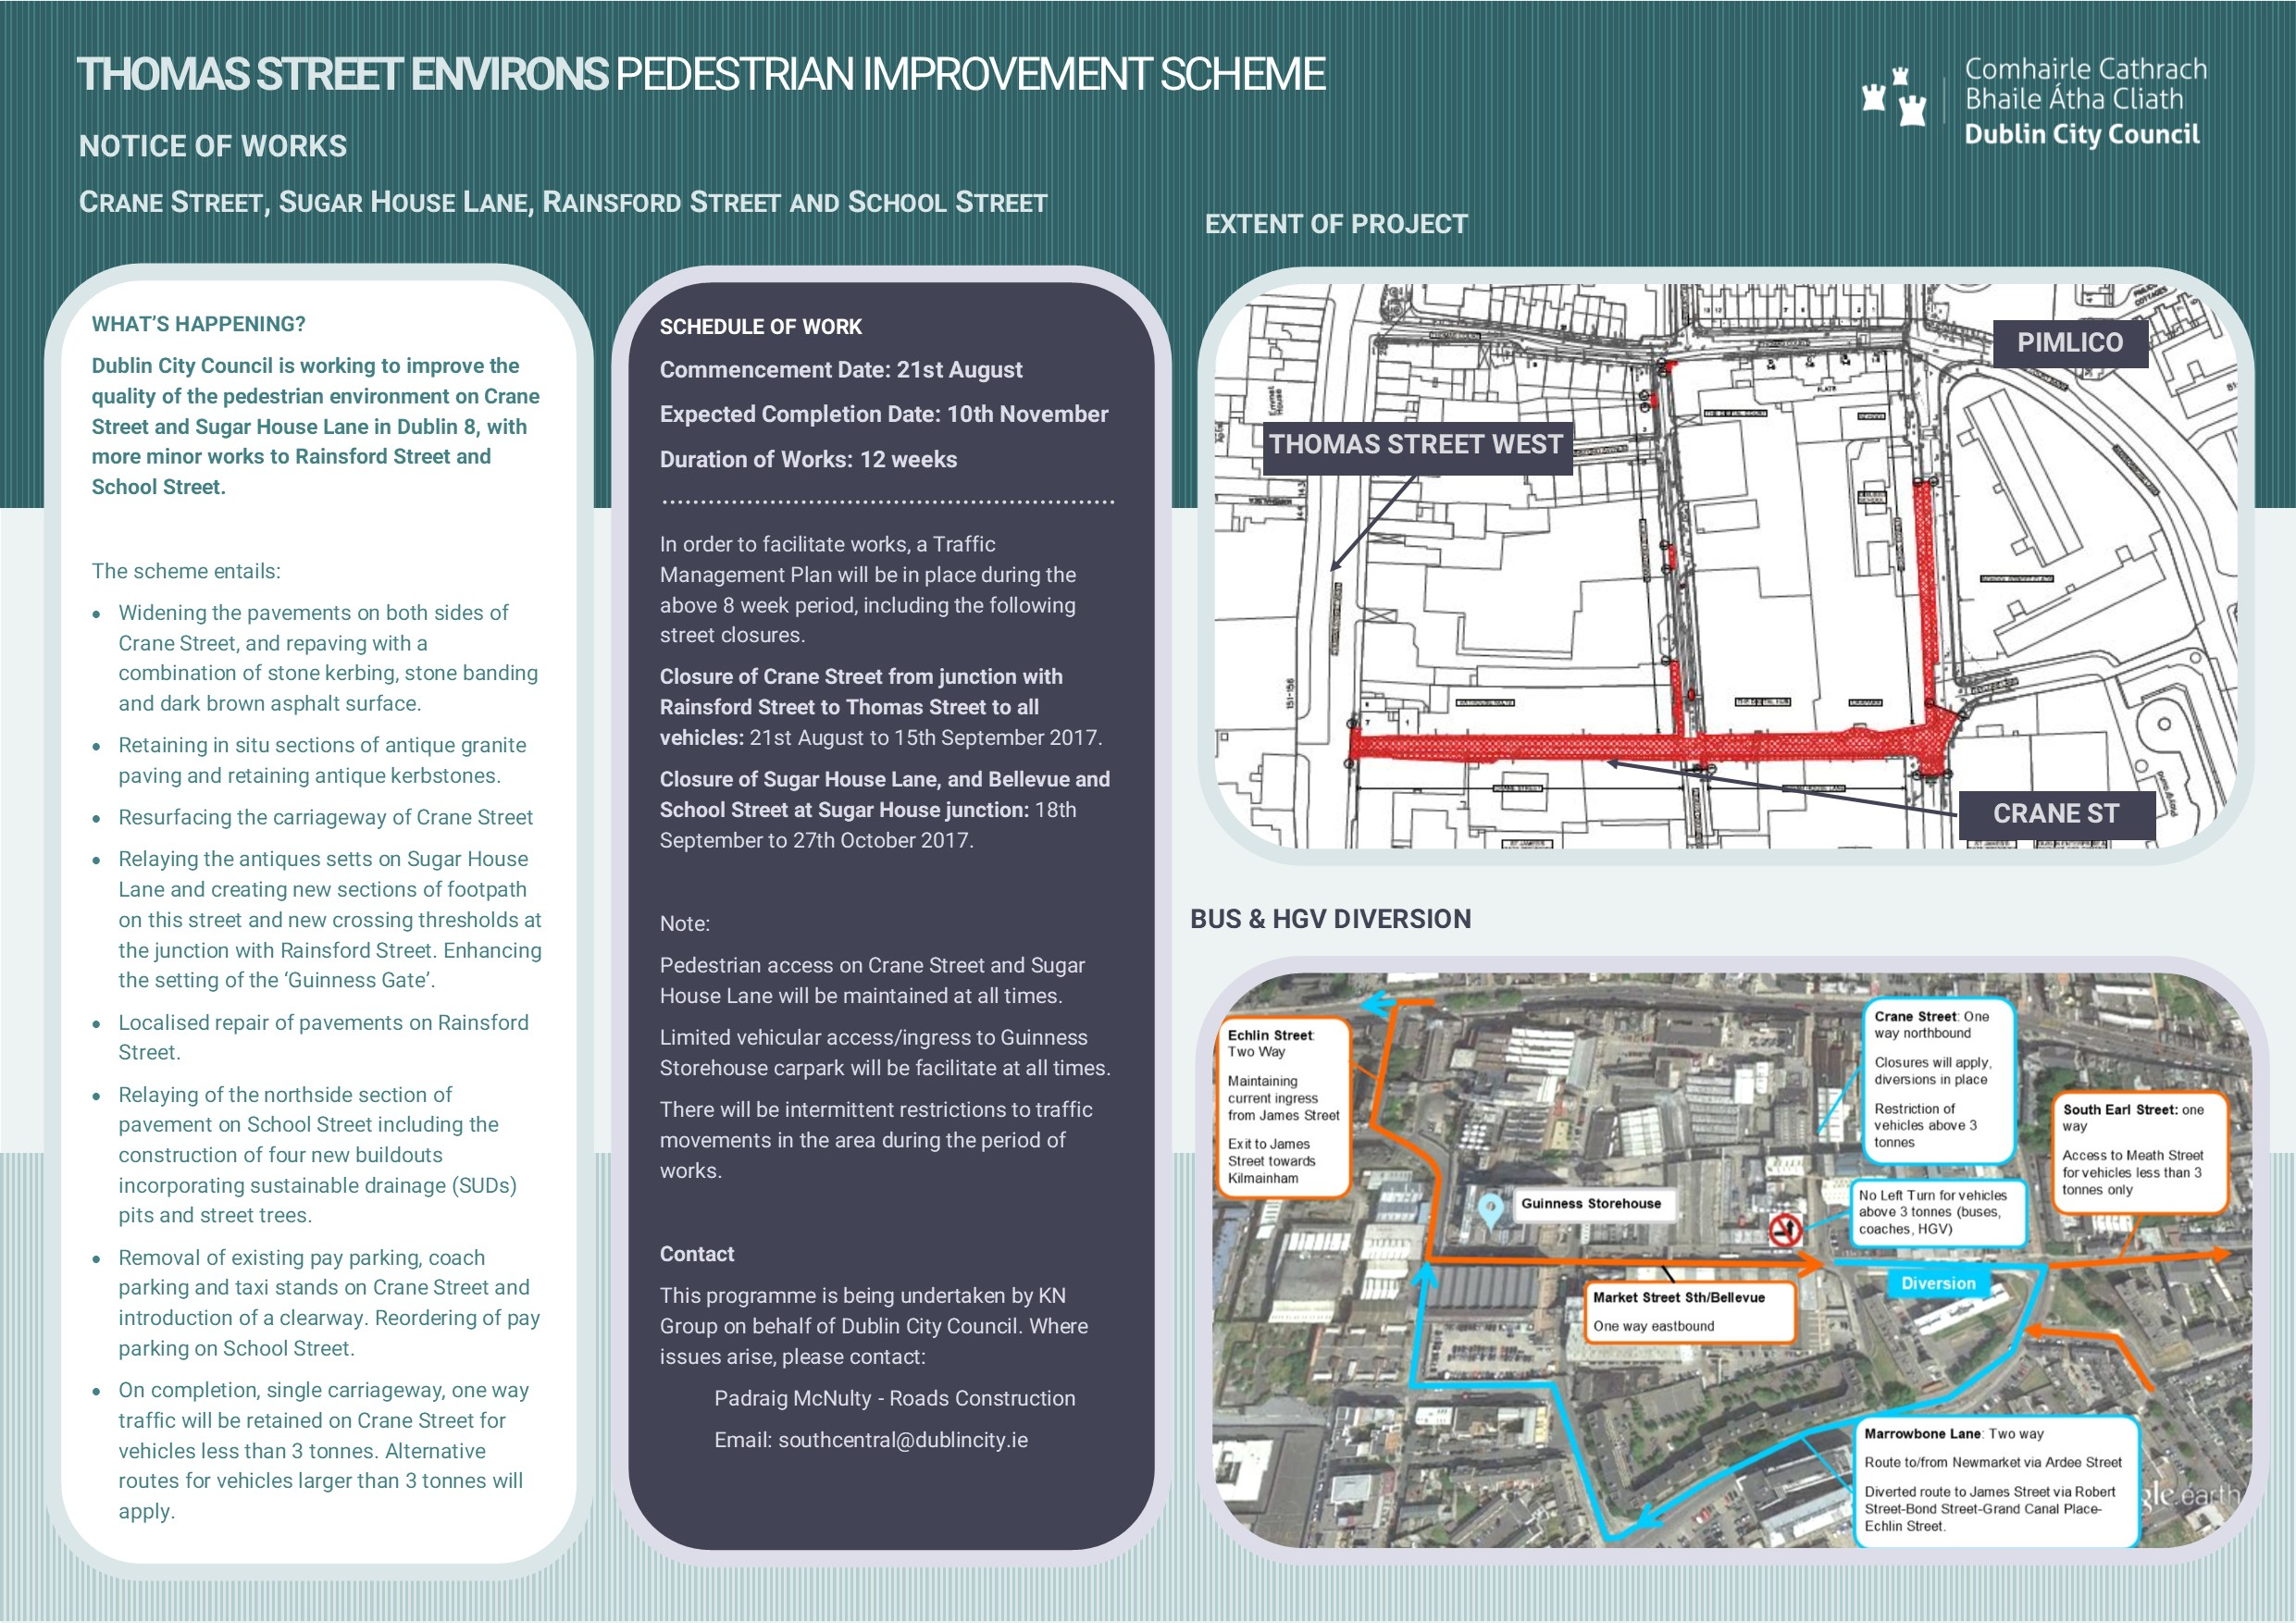 Notice of Proposed Works to Thomas Street Environs